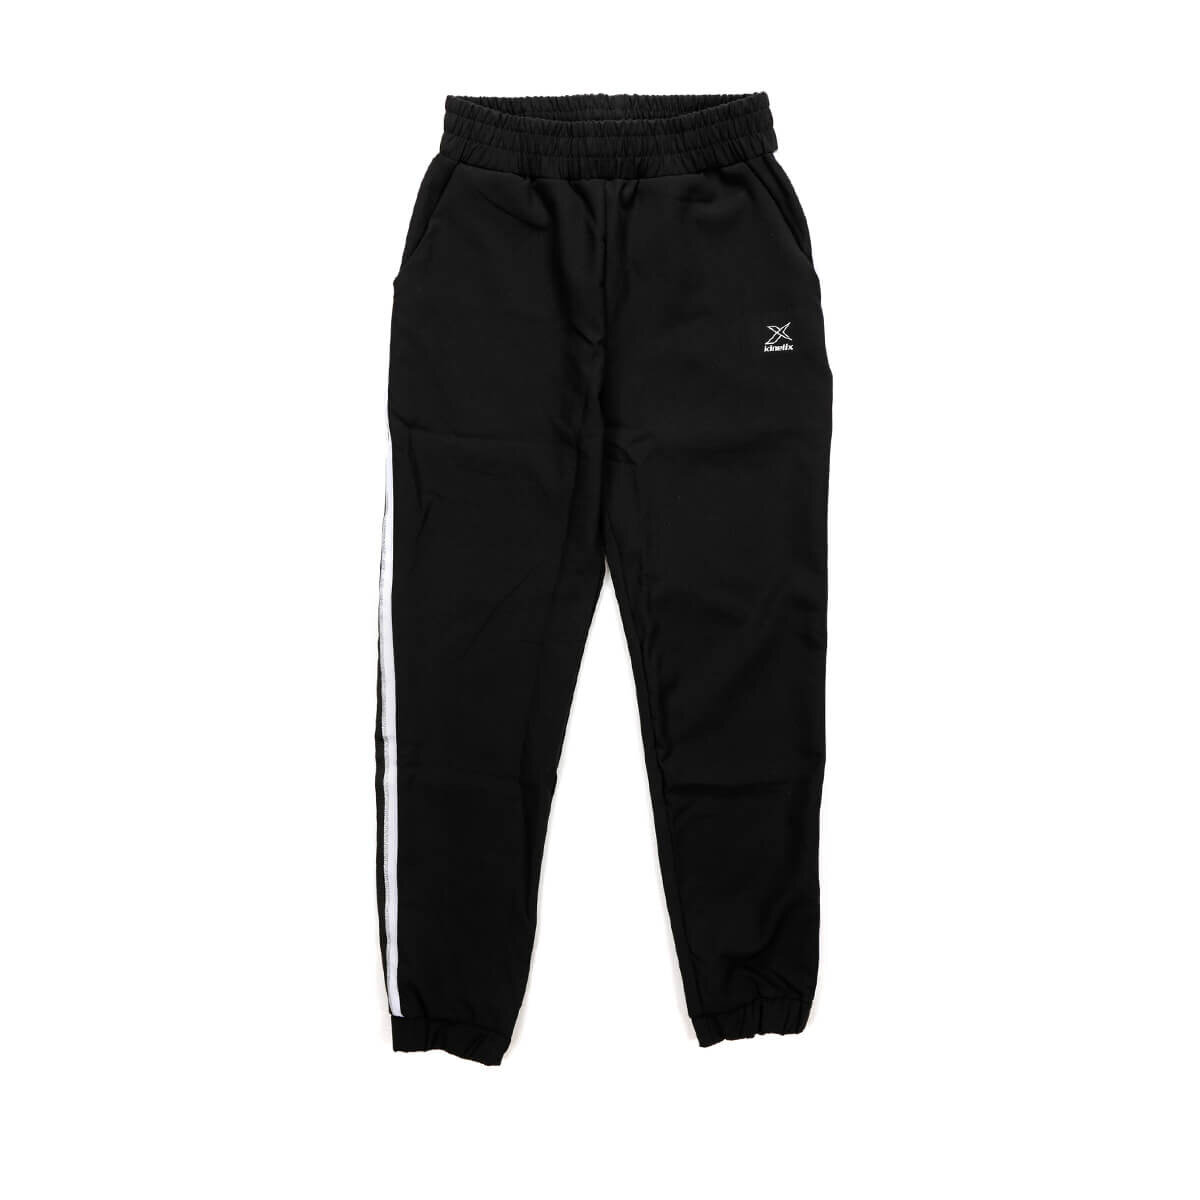 FLO CARMINA SINGLE BOTTOM Black Women 'S Tracksuit KINETIX